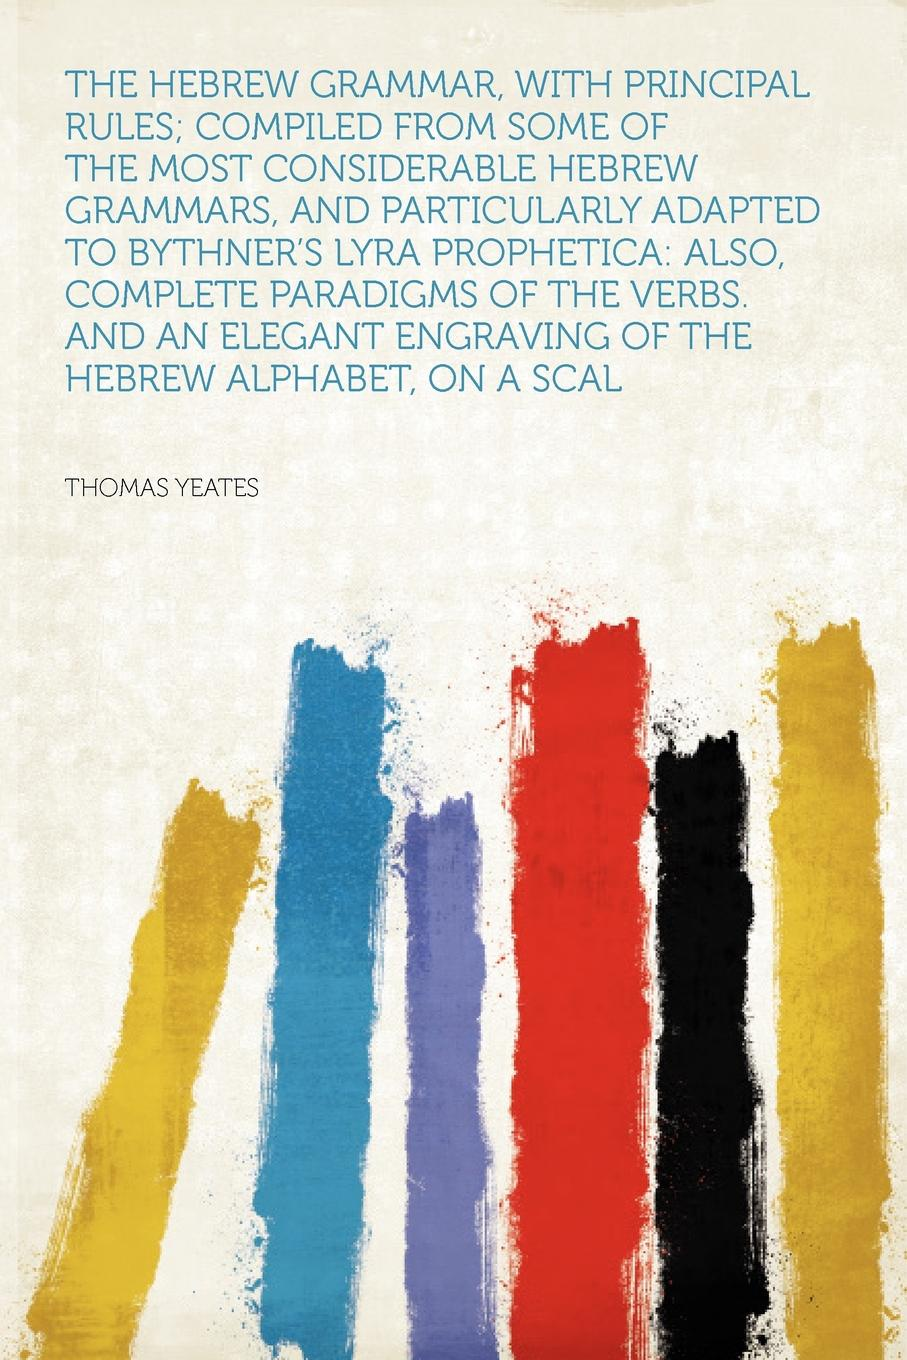 The Hebrew Grammar, With Principal Rules; Compiled From Some of the Most Considerable Hebrew Grammars, and Particularly Adapted to Bythner`s Lyra Prophetica. Also, Complete Paradigms of the Verbs. and an Elegant Engraving of the Hebrew Alphabet, o...